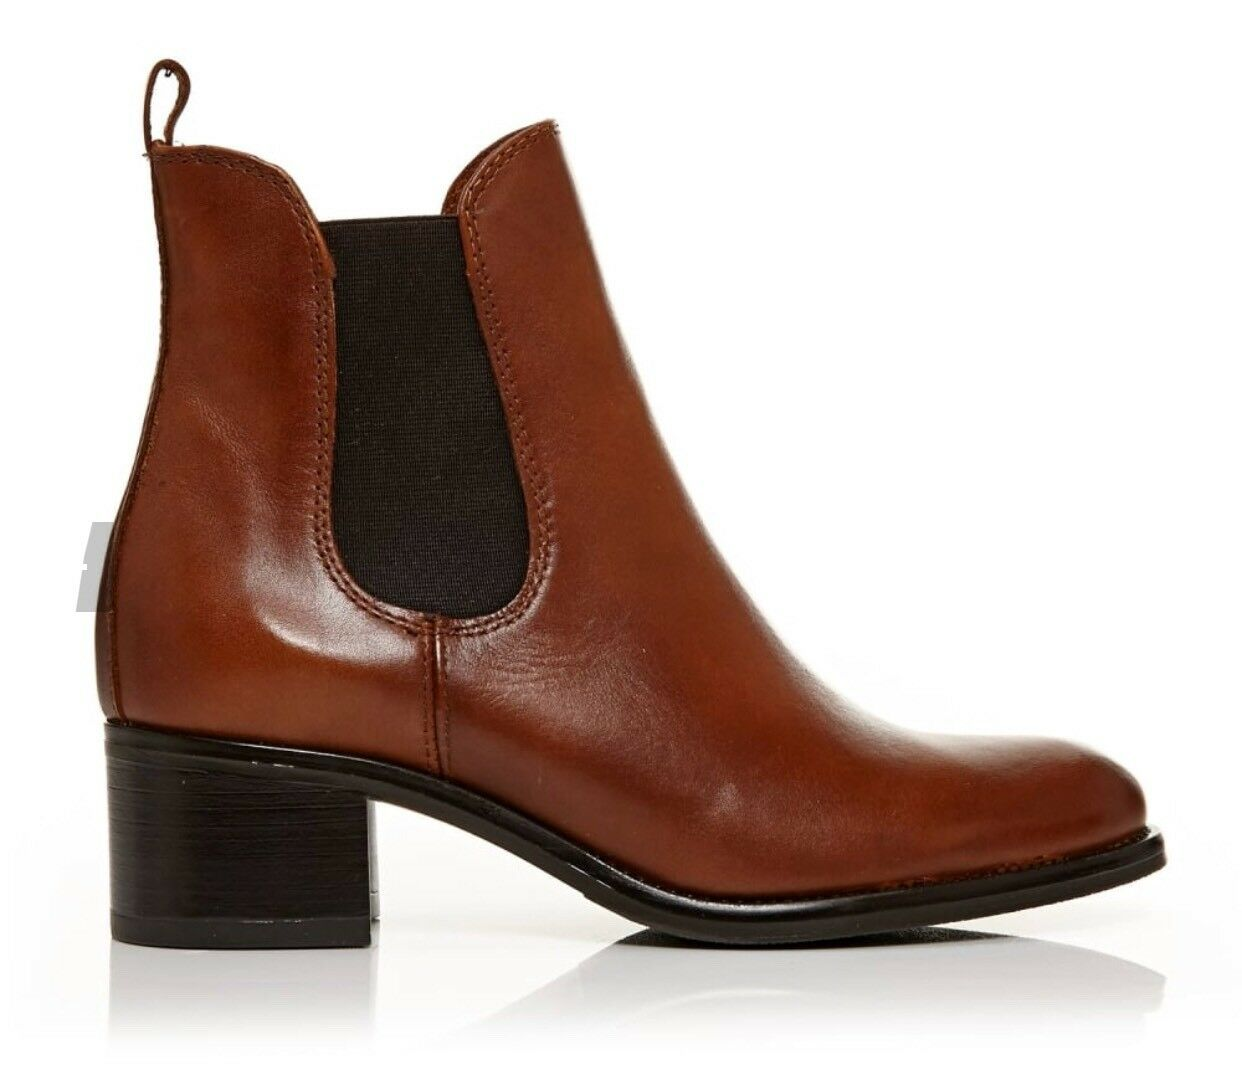 Moda In Pelle Colona Chelsea Tan Leather Chelsea Colona Boots Eu 38 95e10c